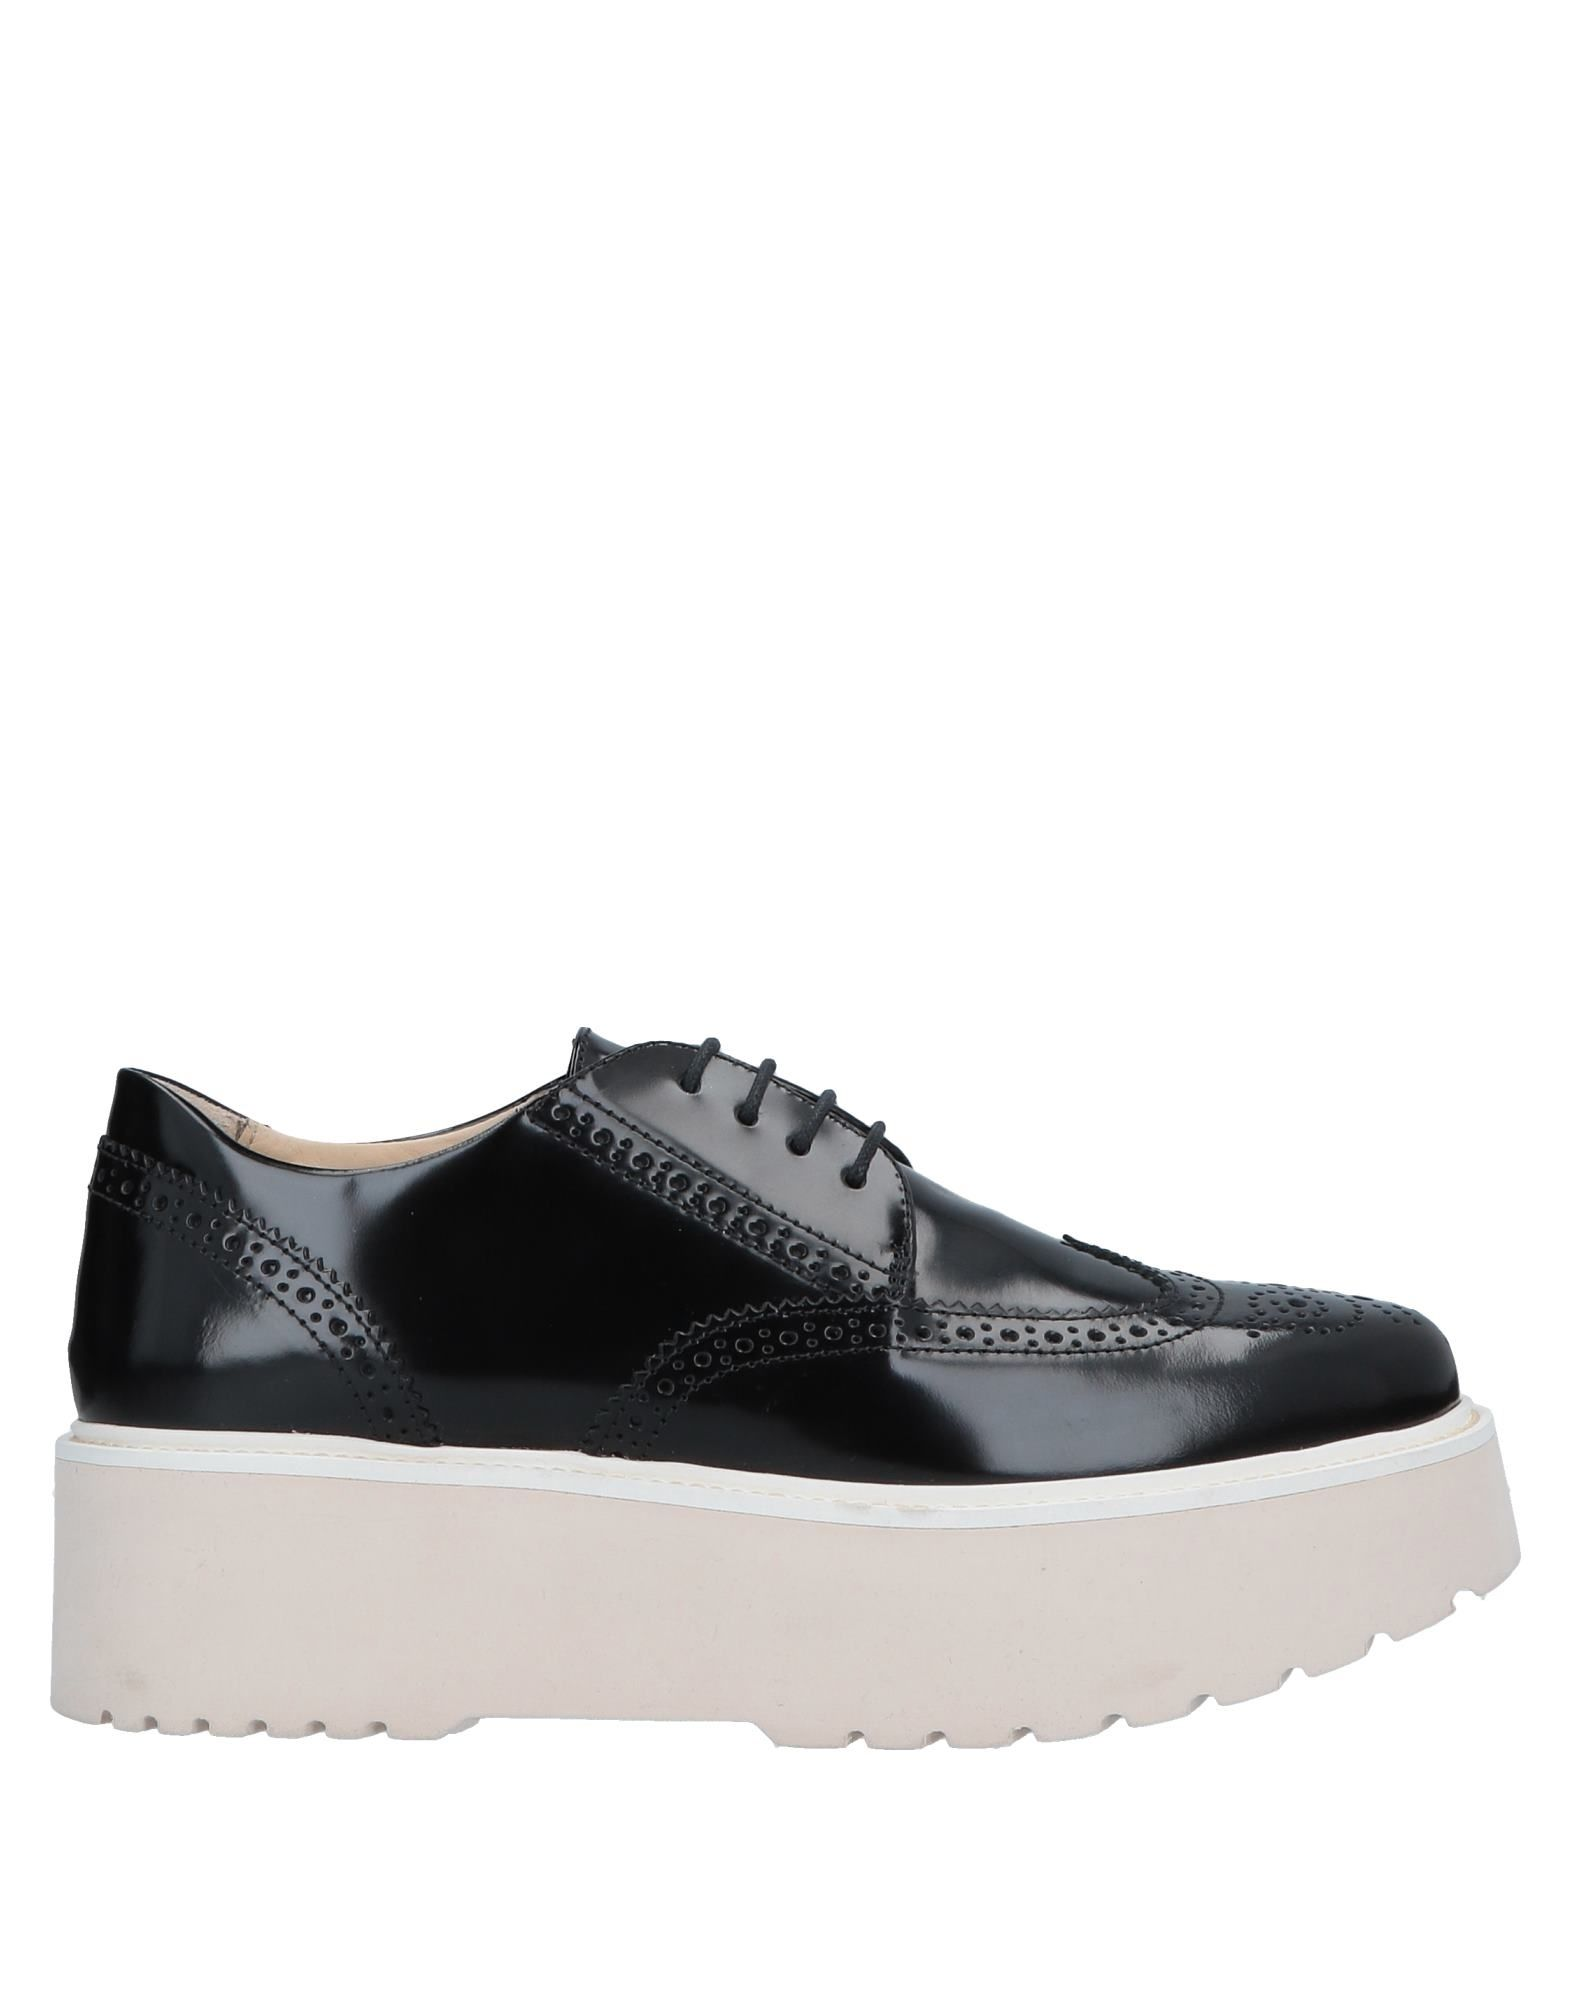 HOGAN Lace-up shoes. leather, polished leather, no appliqués, solid color, round toeline, flatform, leather lining, rubber sole, contains non-textile parts of animal origin. Soft Leather